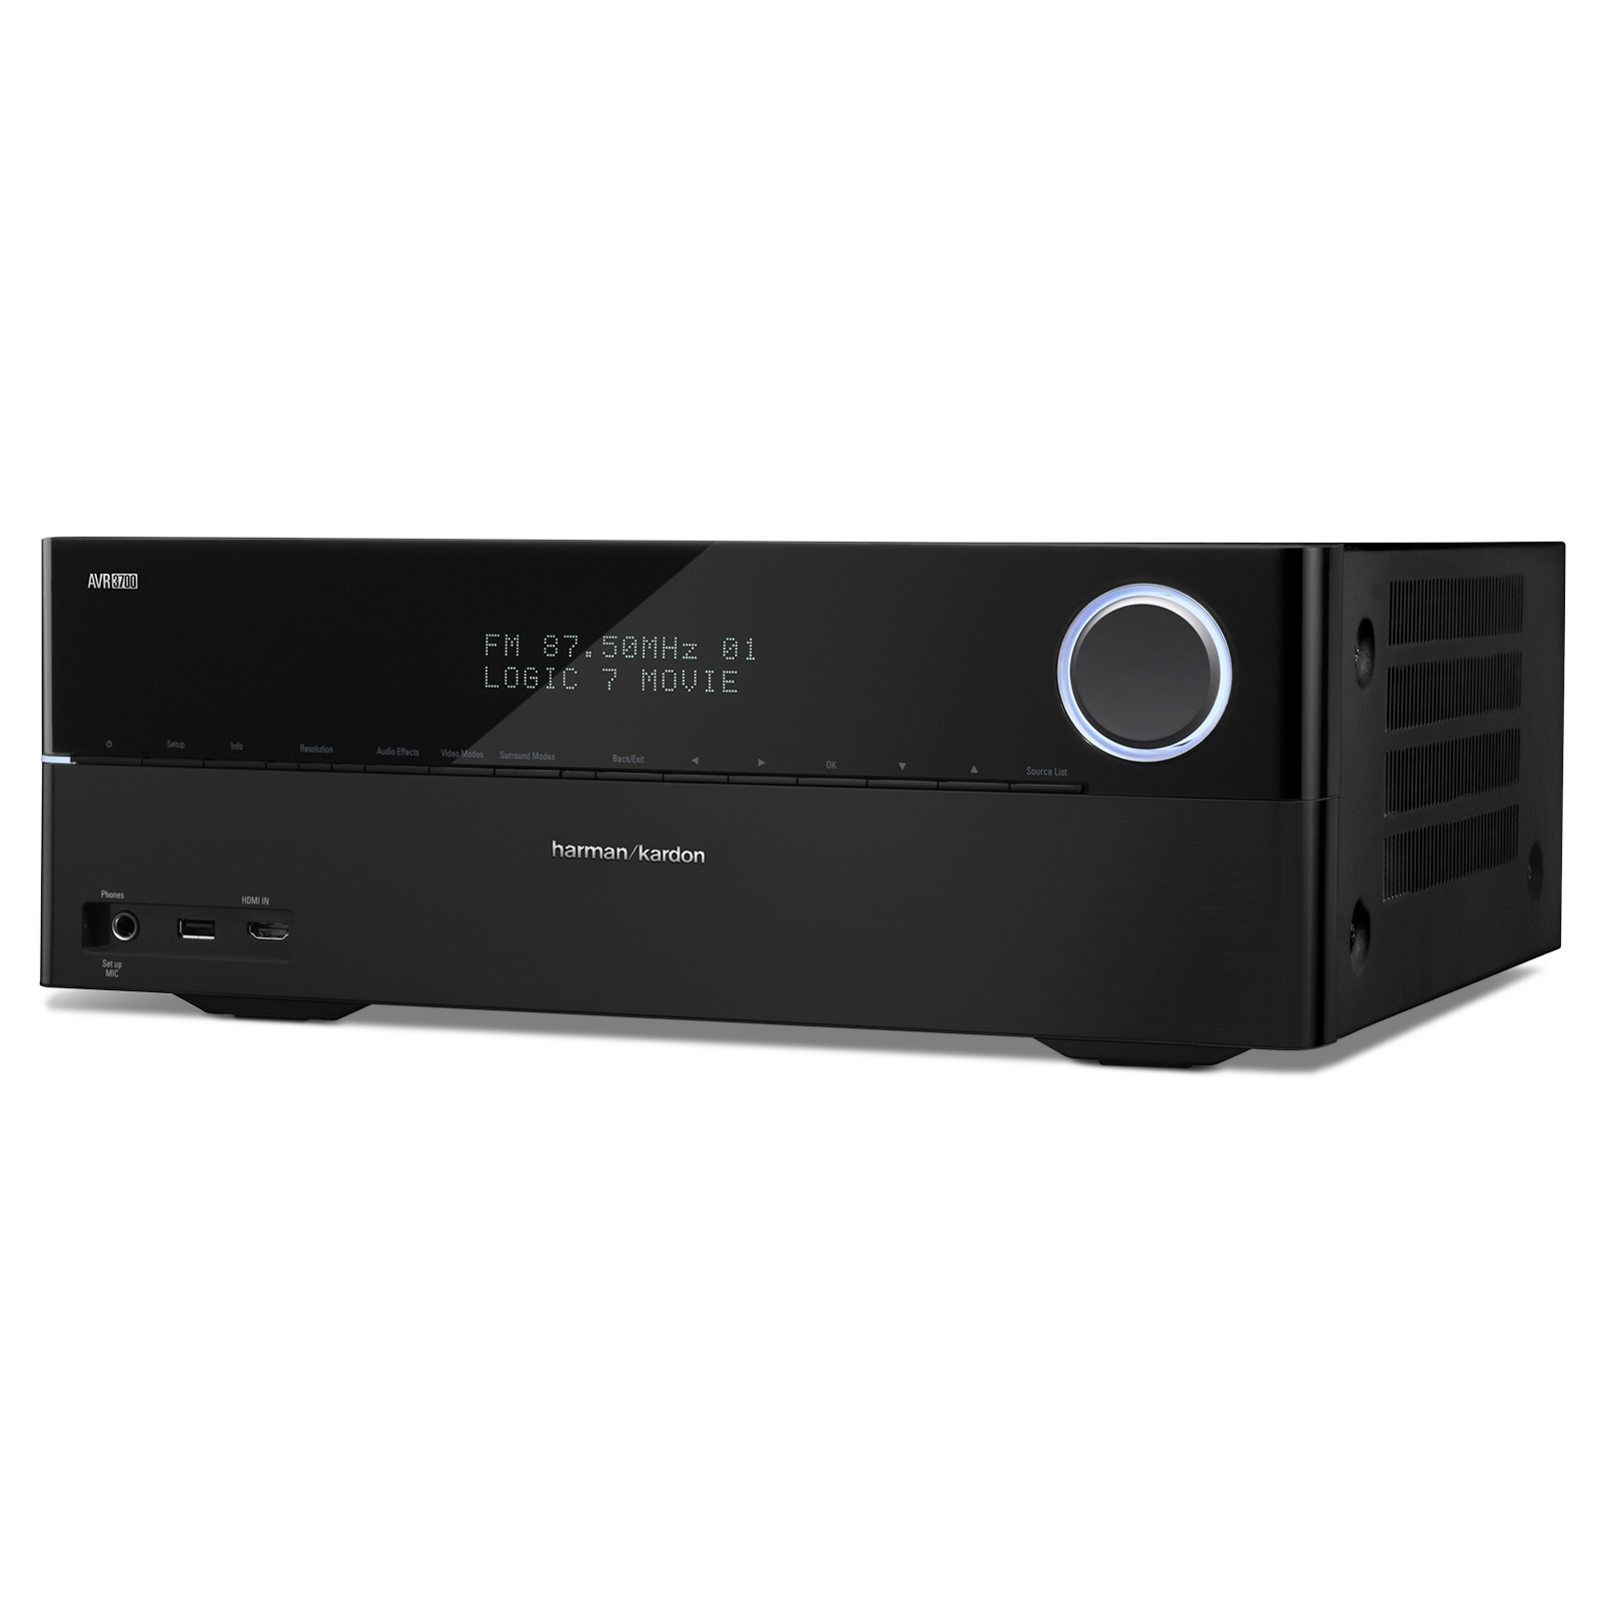 AVR 3700 - Black - Audio/Video Receiver With Dolby TrueHD & DTS-HD Master Audio & HDMI 1.4 (125 watts x 7) 7.2 - Hero